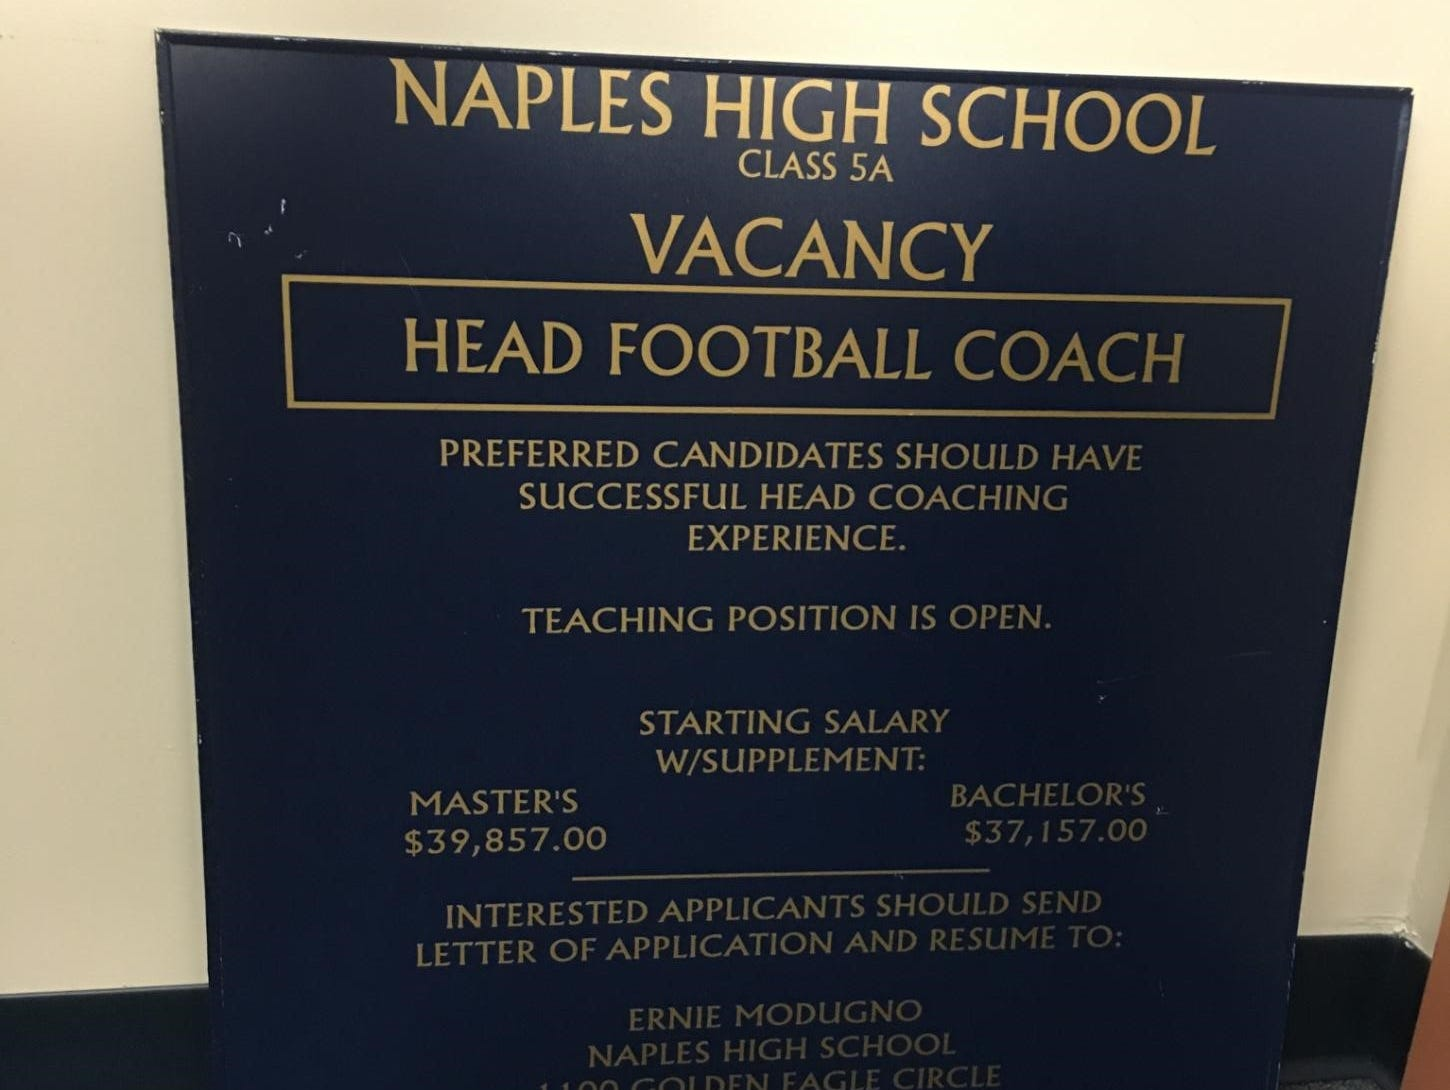 When Naples athletic director Ernie Modugno went to the Florida Athletic Coaches Assocation converntion in 1997 he took this poster to recruit Naples' next football coach.